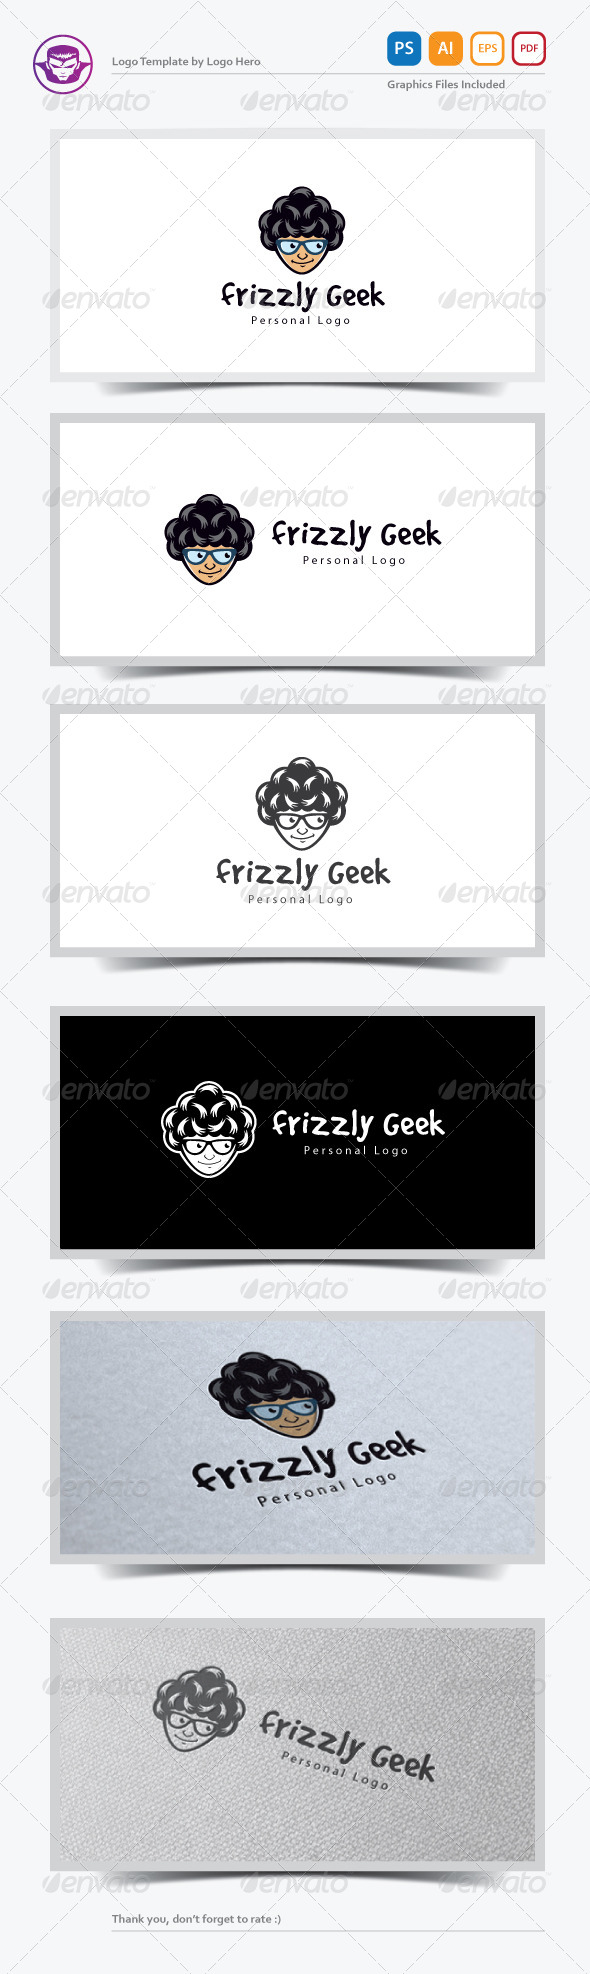 GraphicRiver Frizzly Geek Logo Template 7377552